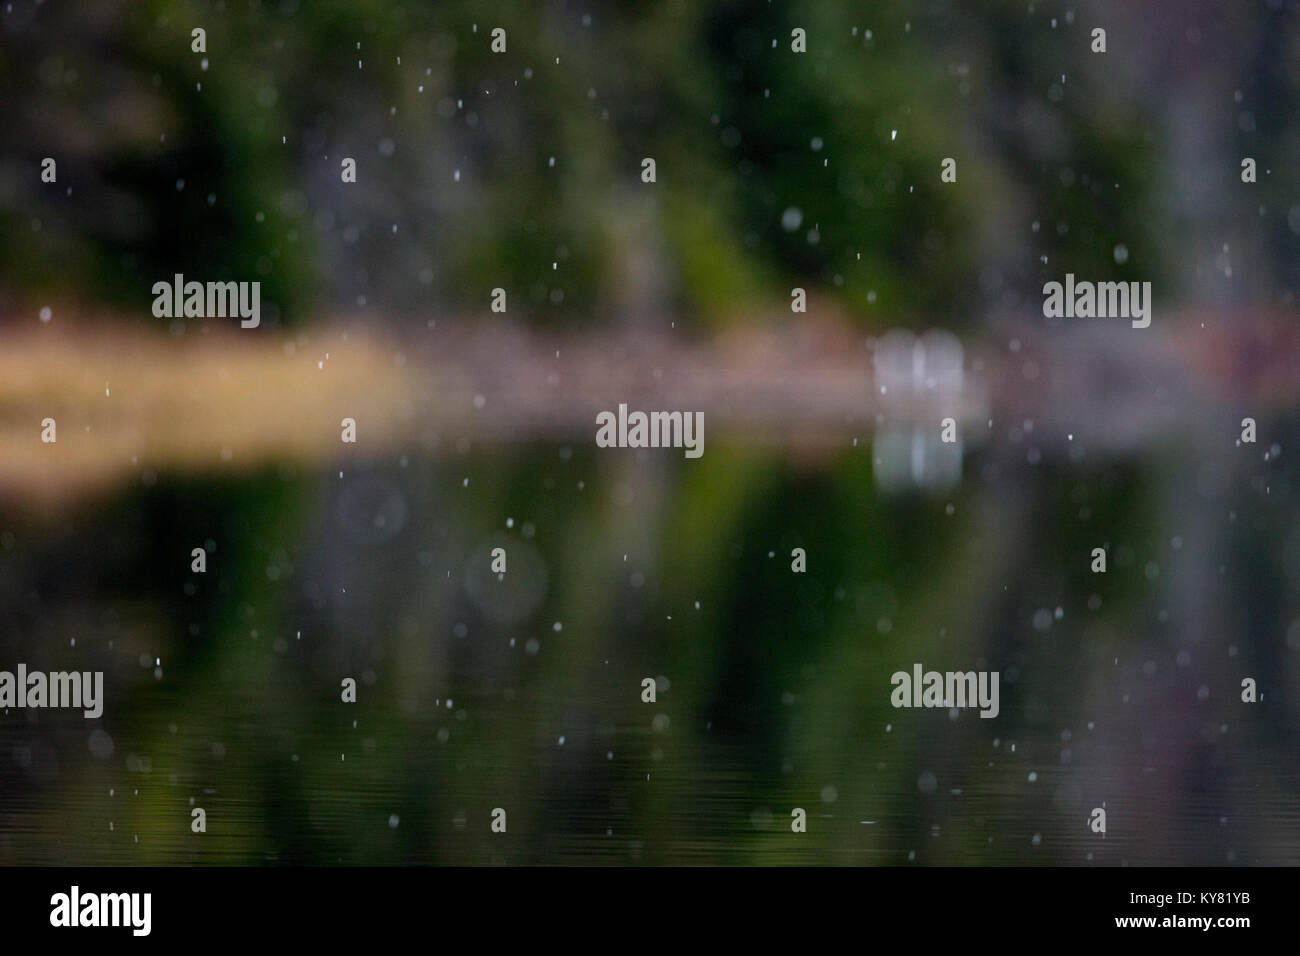 MAYNOOTH, ONTARIO, CANADA - November 7, 2017: Snow falls on a lake in autumn. - Stock Image